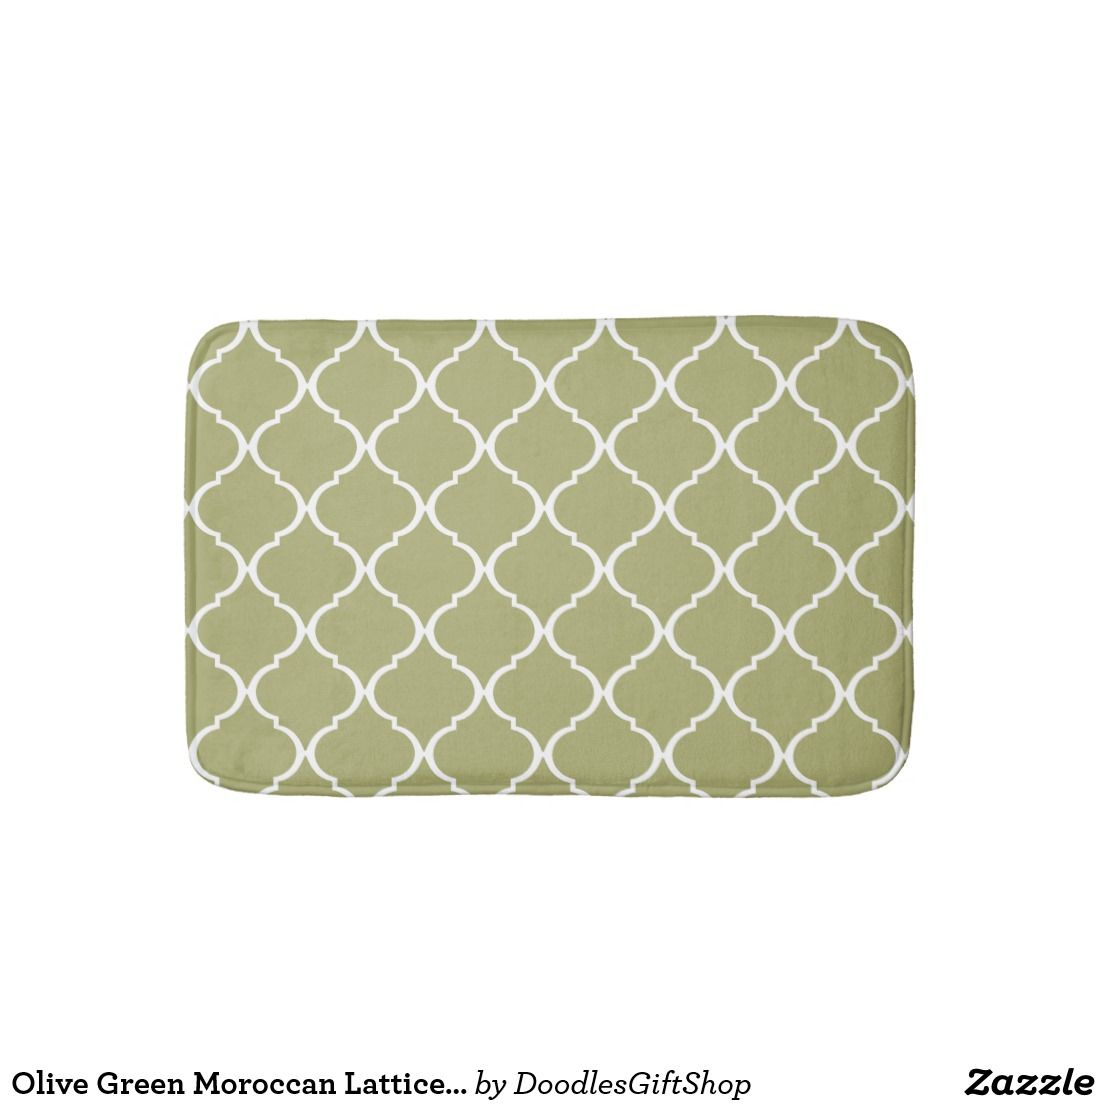 Olive Green Moroccan Lattice Pattern Bathroom Mat Zazzle Com